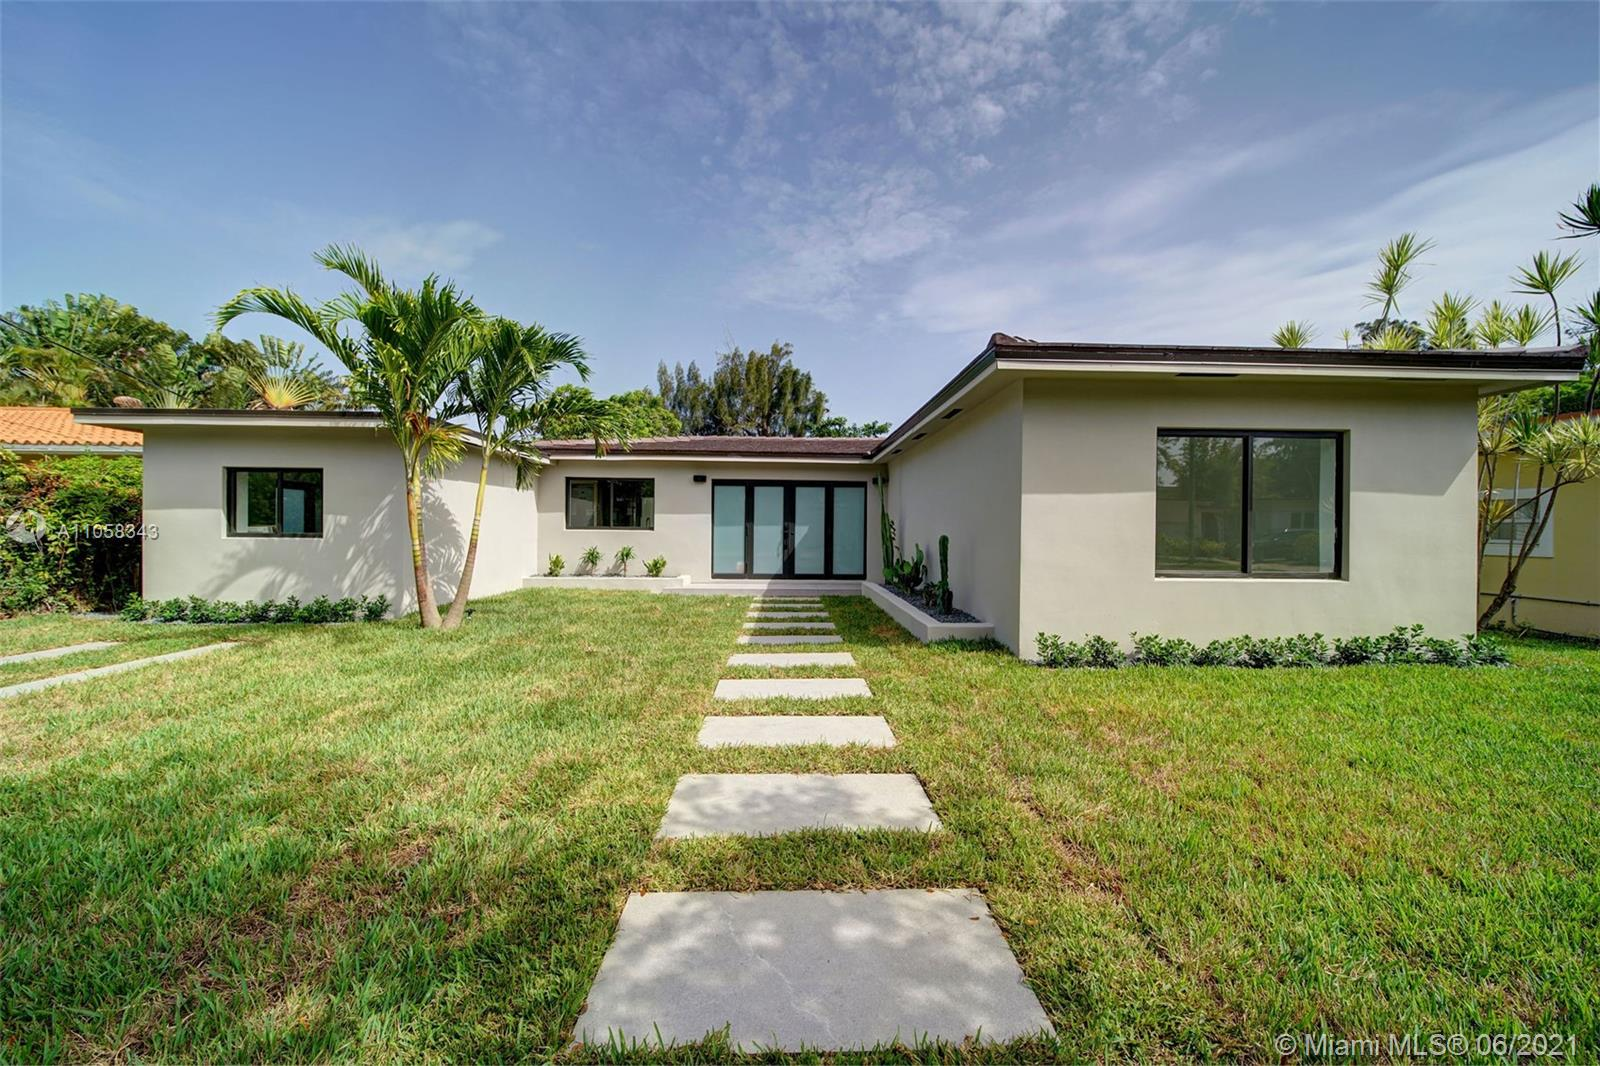 Located in the prestigious island of Normandy, this gorgeous house has been remodeled from top to bottom. No expenses have been spared. Custom cabinetry, italian kitchen, luxury appliances as well as stunning bathrooms. This 3 bedroom + den, 3 baths is an oasis in the middle of the city. The large backyard has an exquisite view on the golf course and plenty of room for a pool. The den can be used for laundry and/or storage. You can also have access to the community's amenities such as the pool, waterpark for kids, tennis courts ...